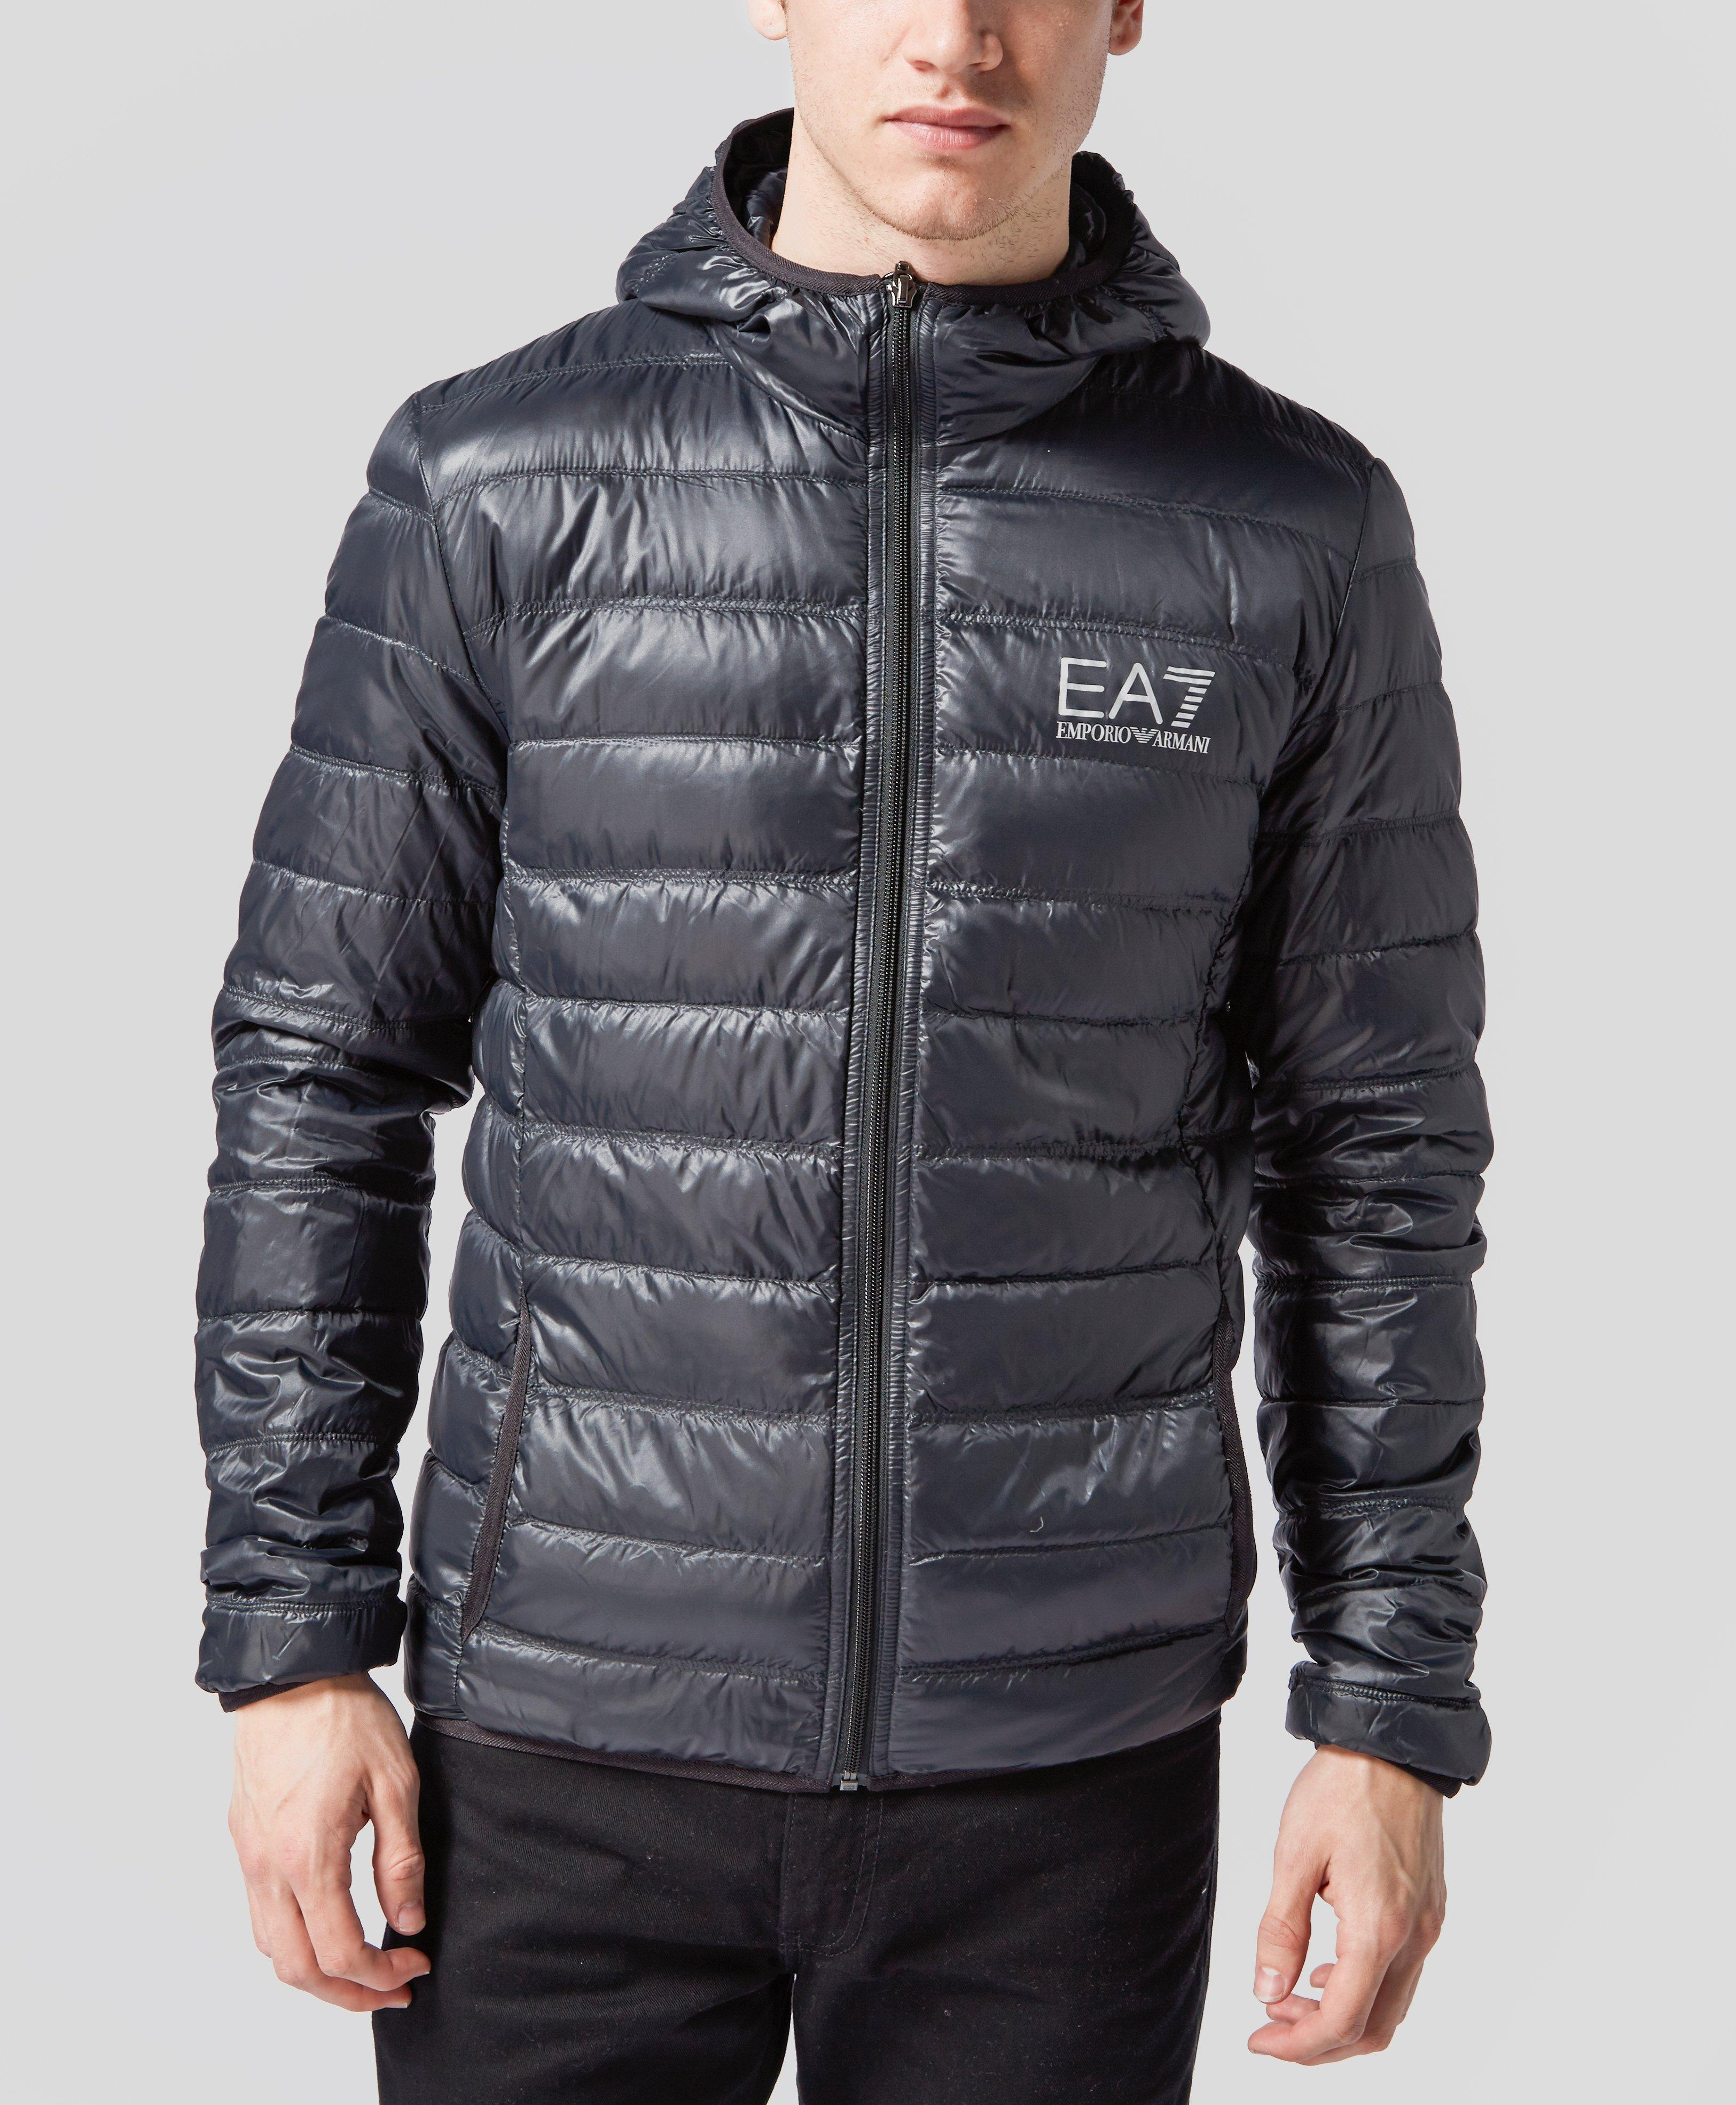 Select the best of armani jackets for you